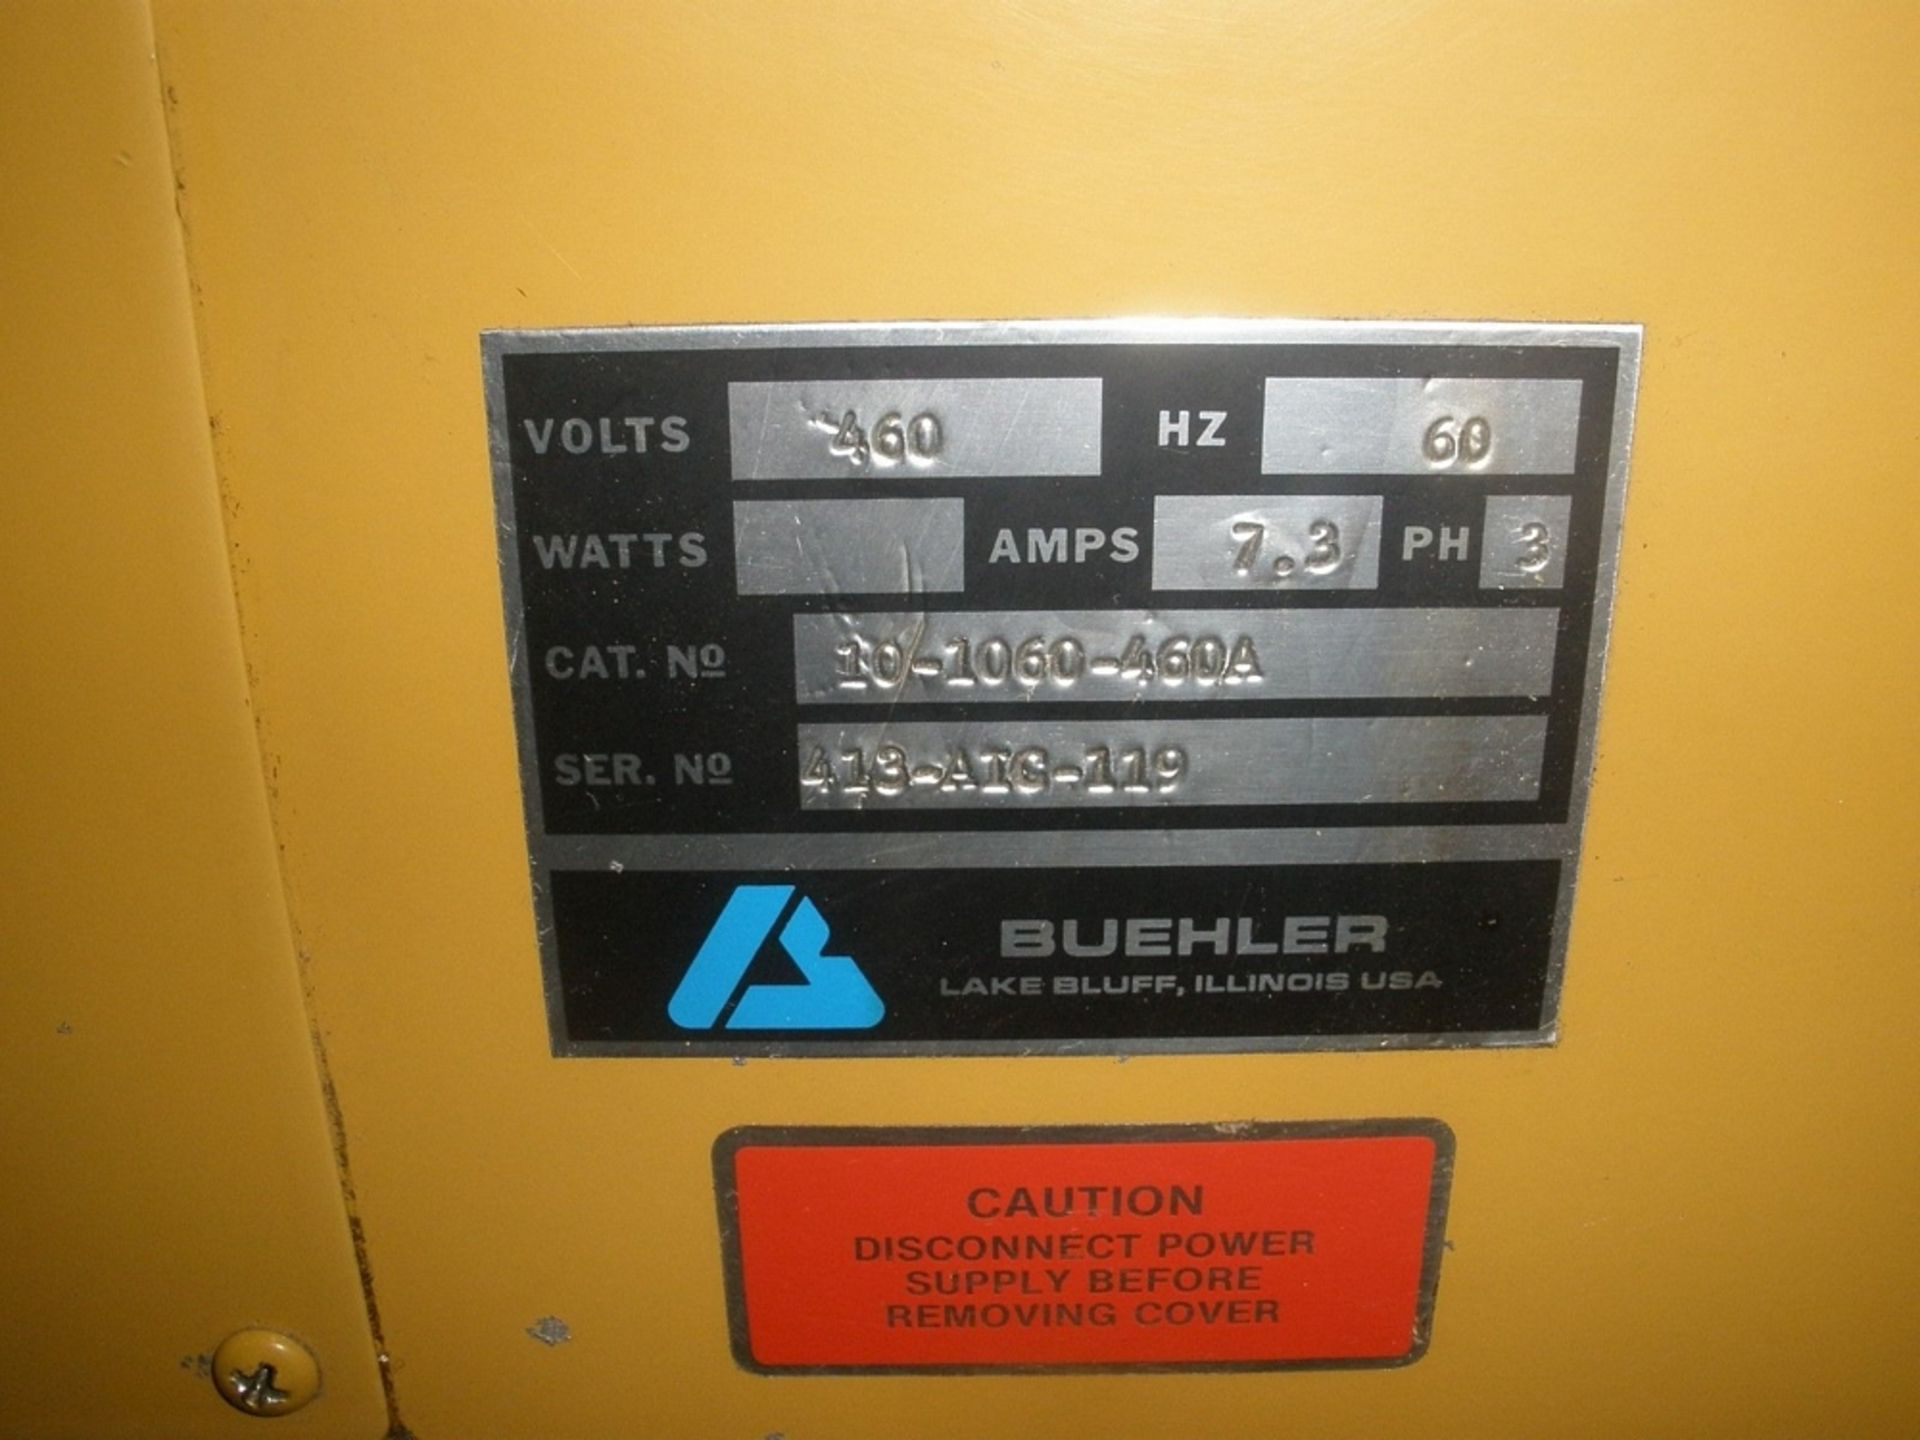 Lot 35 - Buehler Abrasimatic Wet Cut-Off Saw 460V 3PH We can provide loading for this item for a fee of $